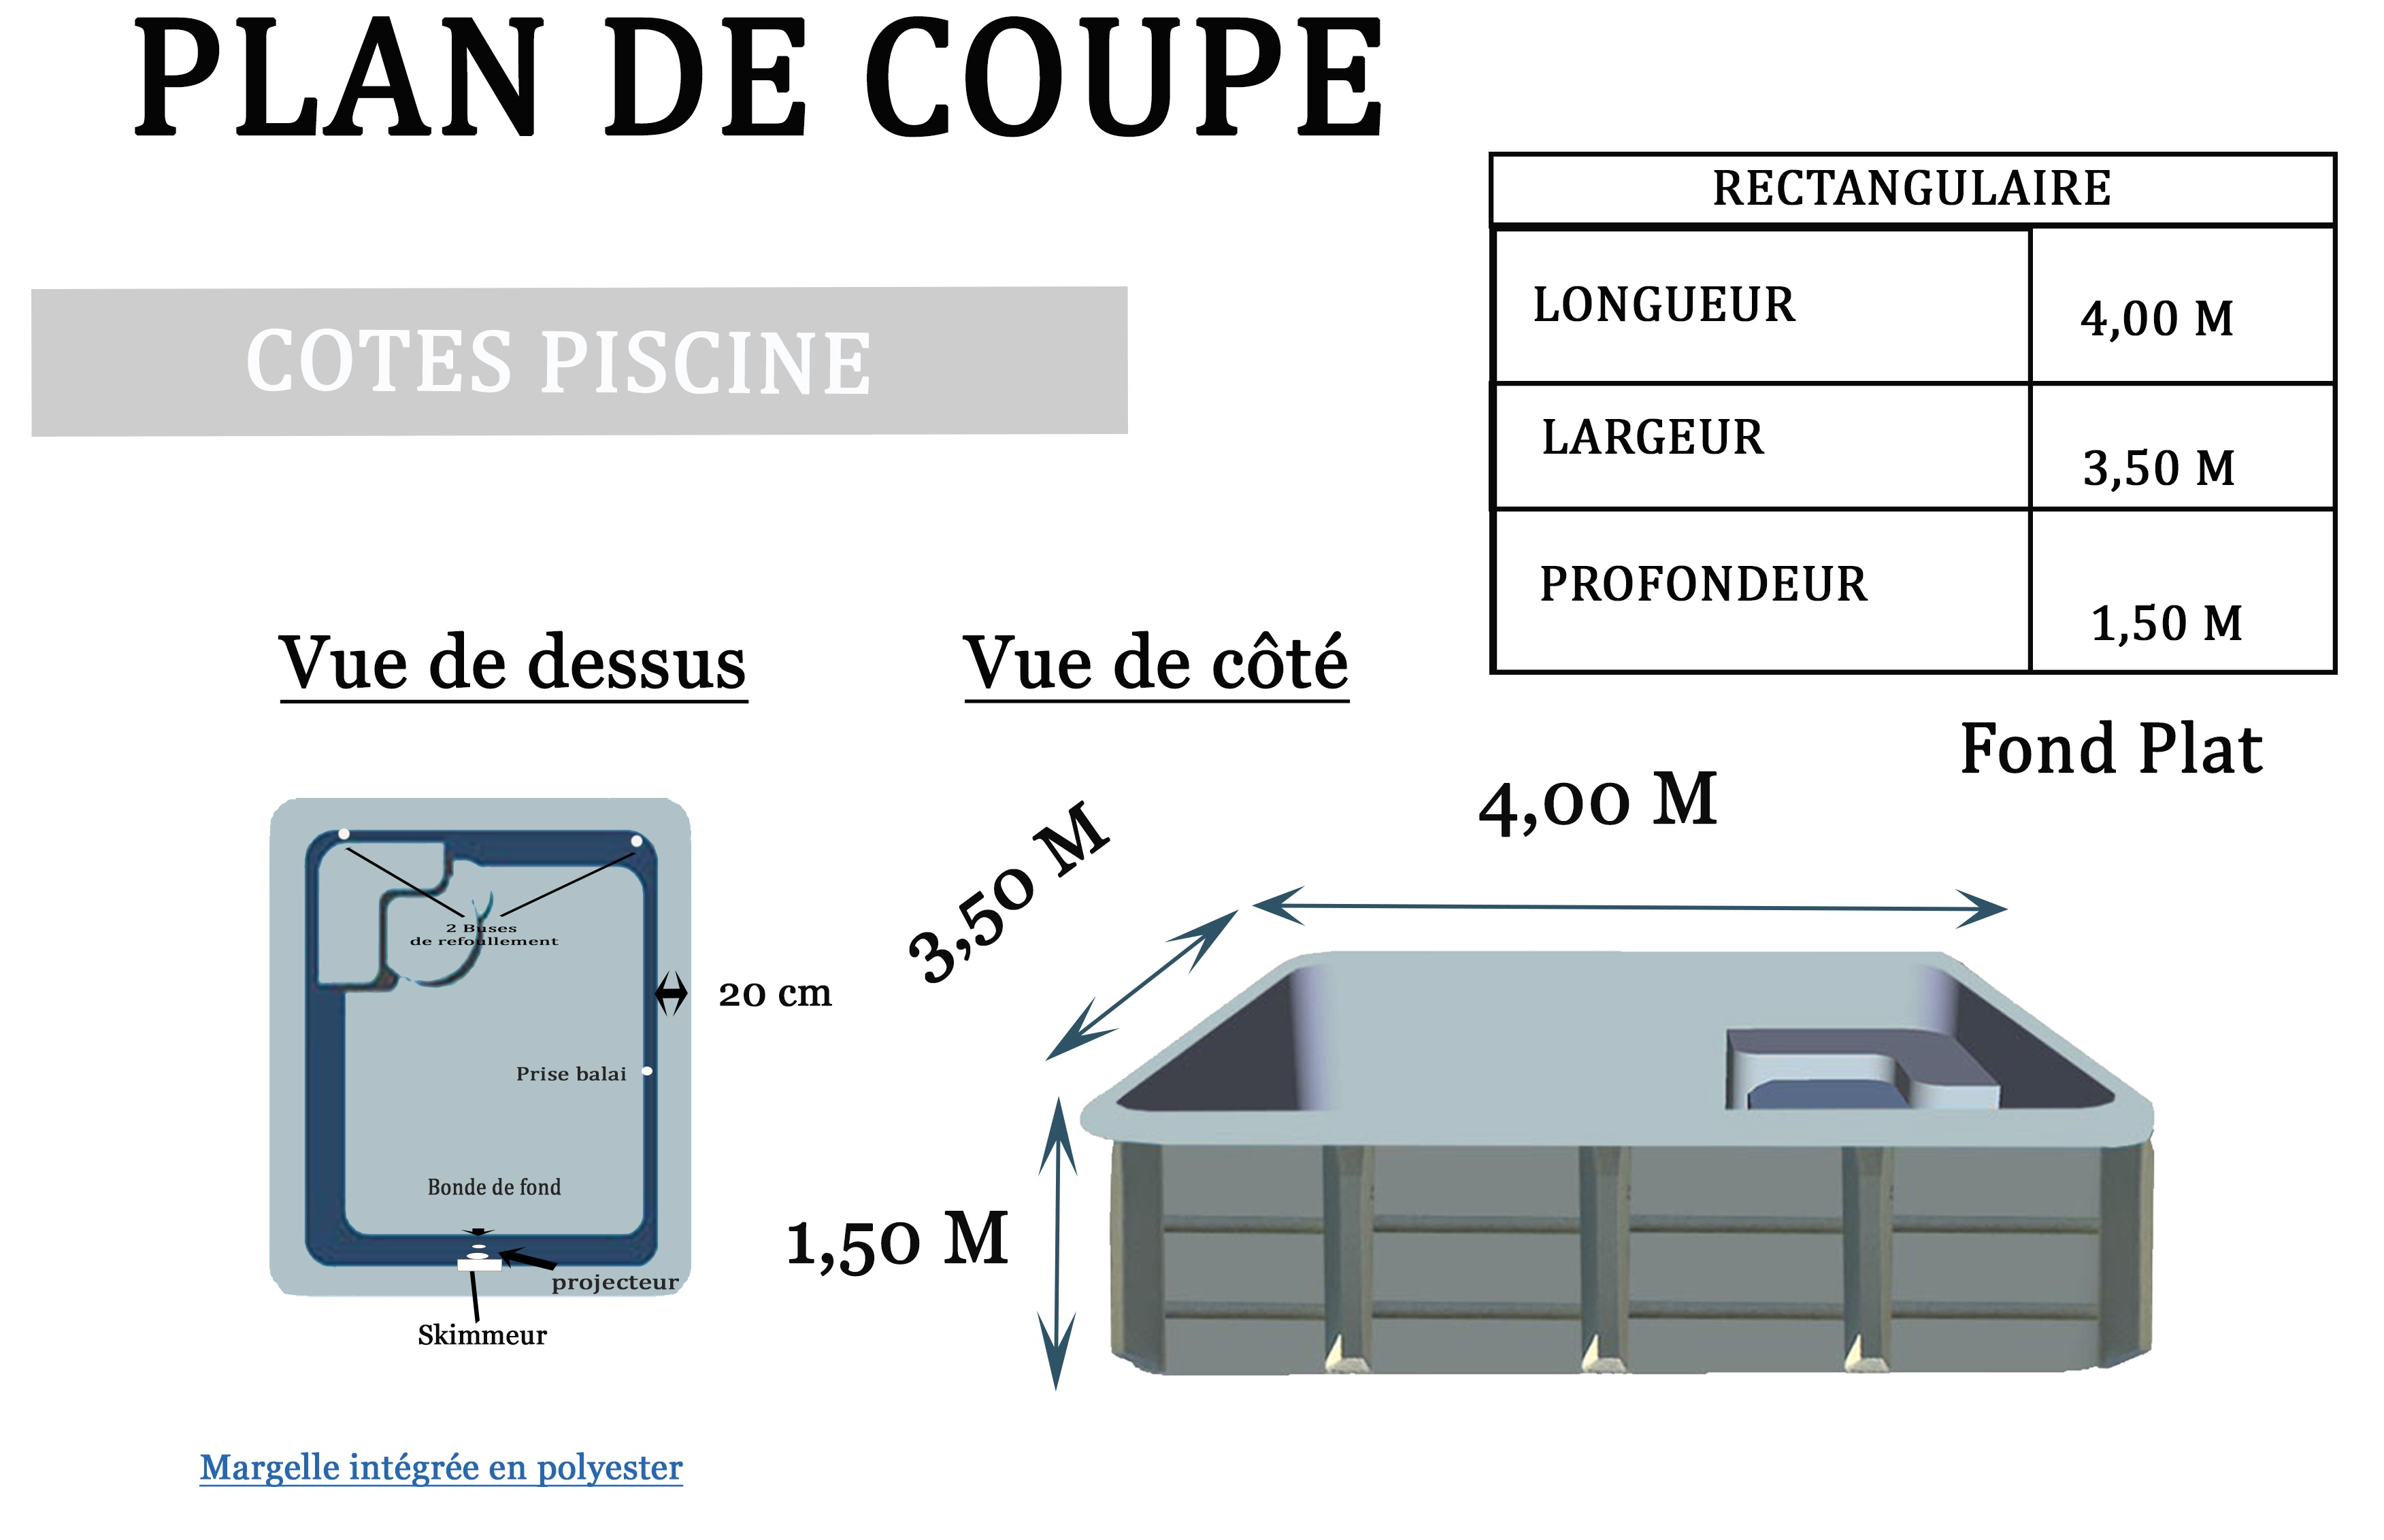 Plan piscine coque Rectangulaire 400